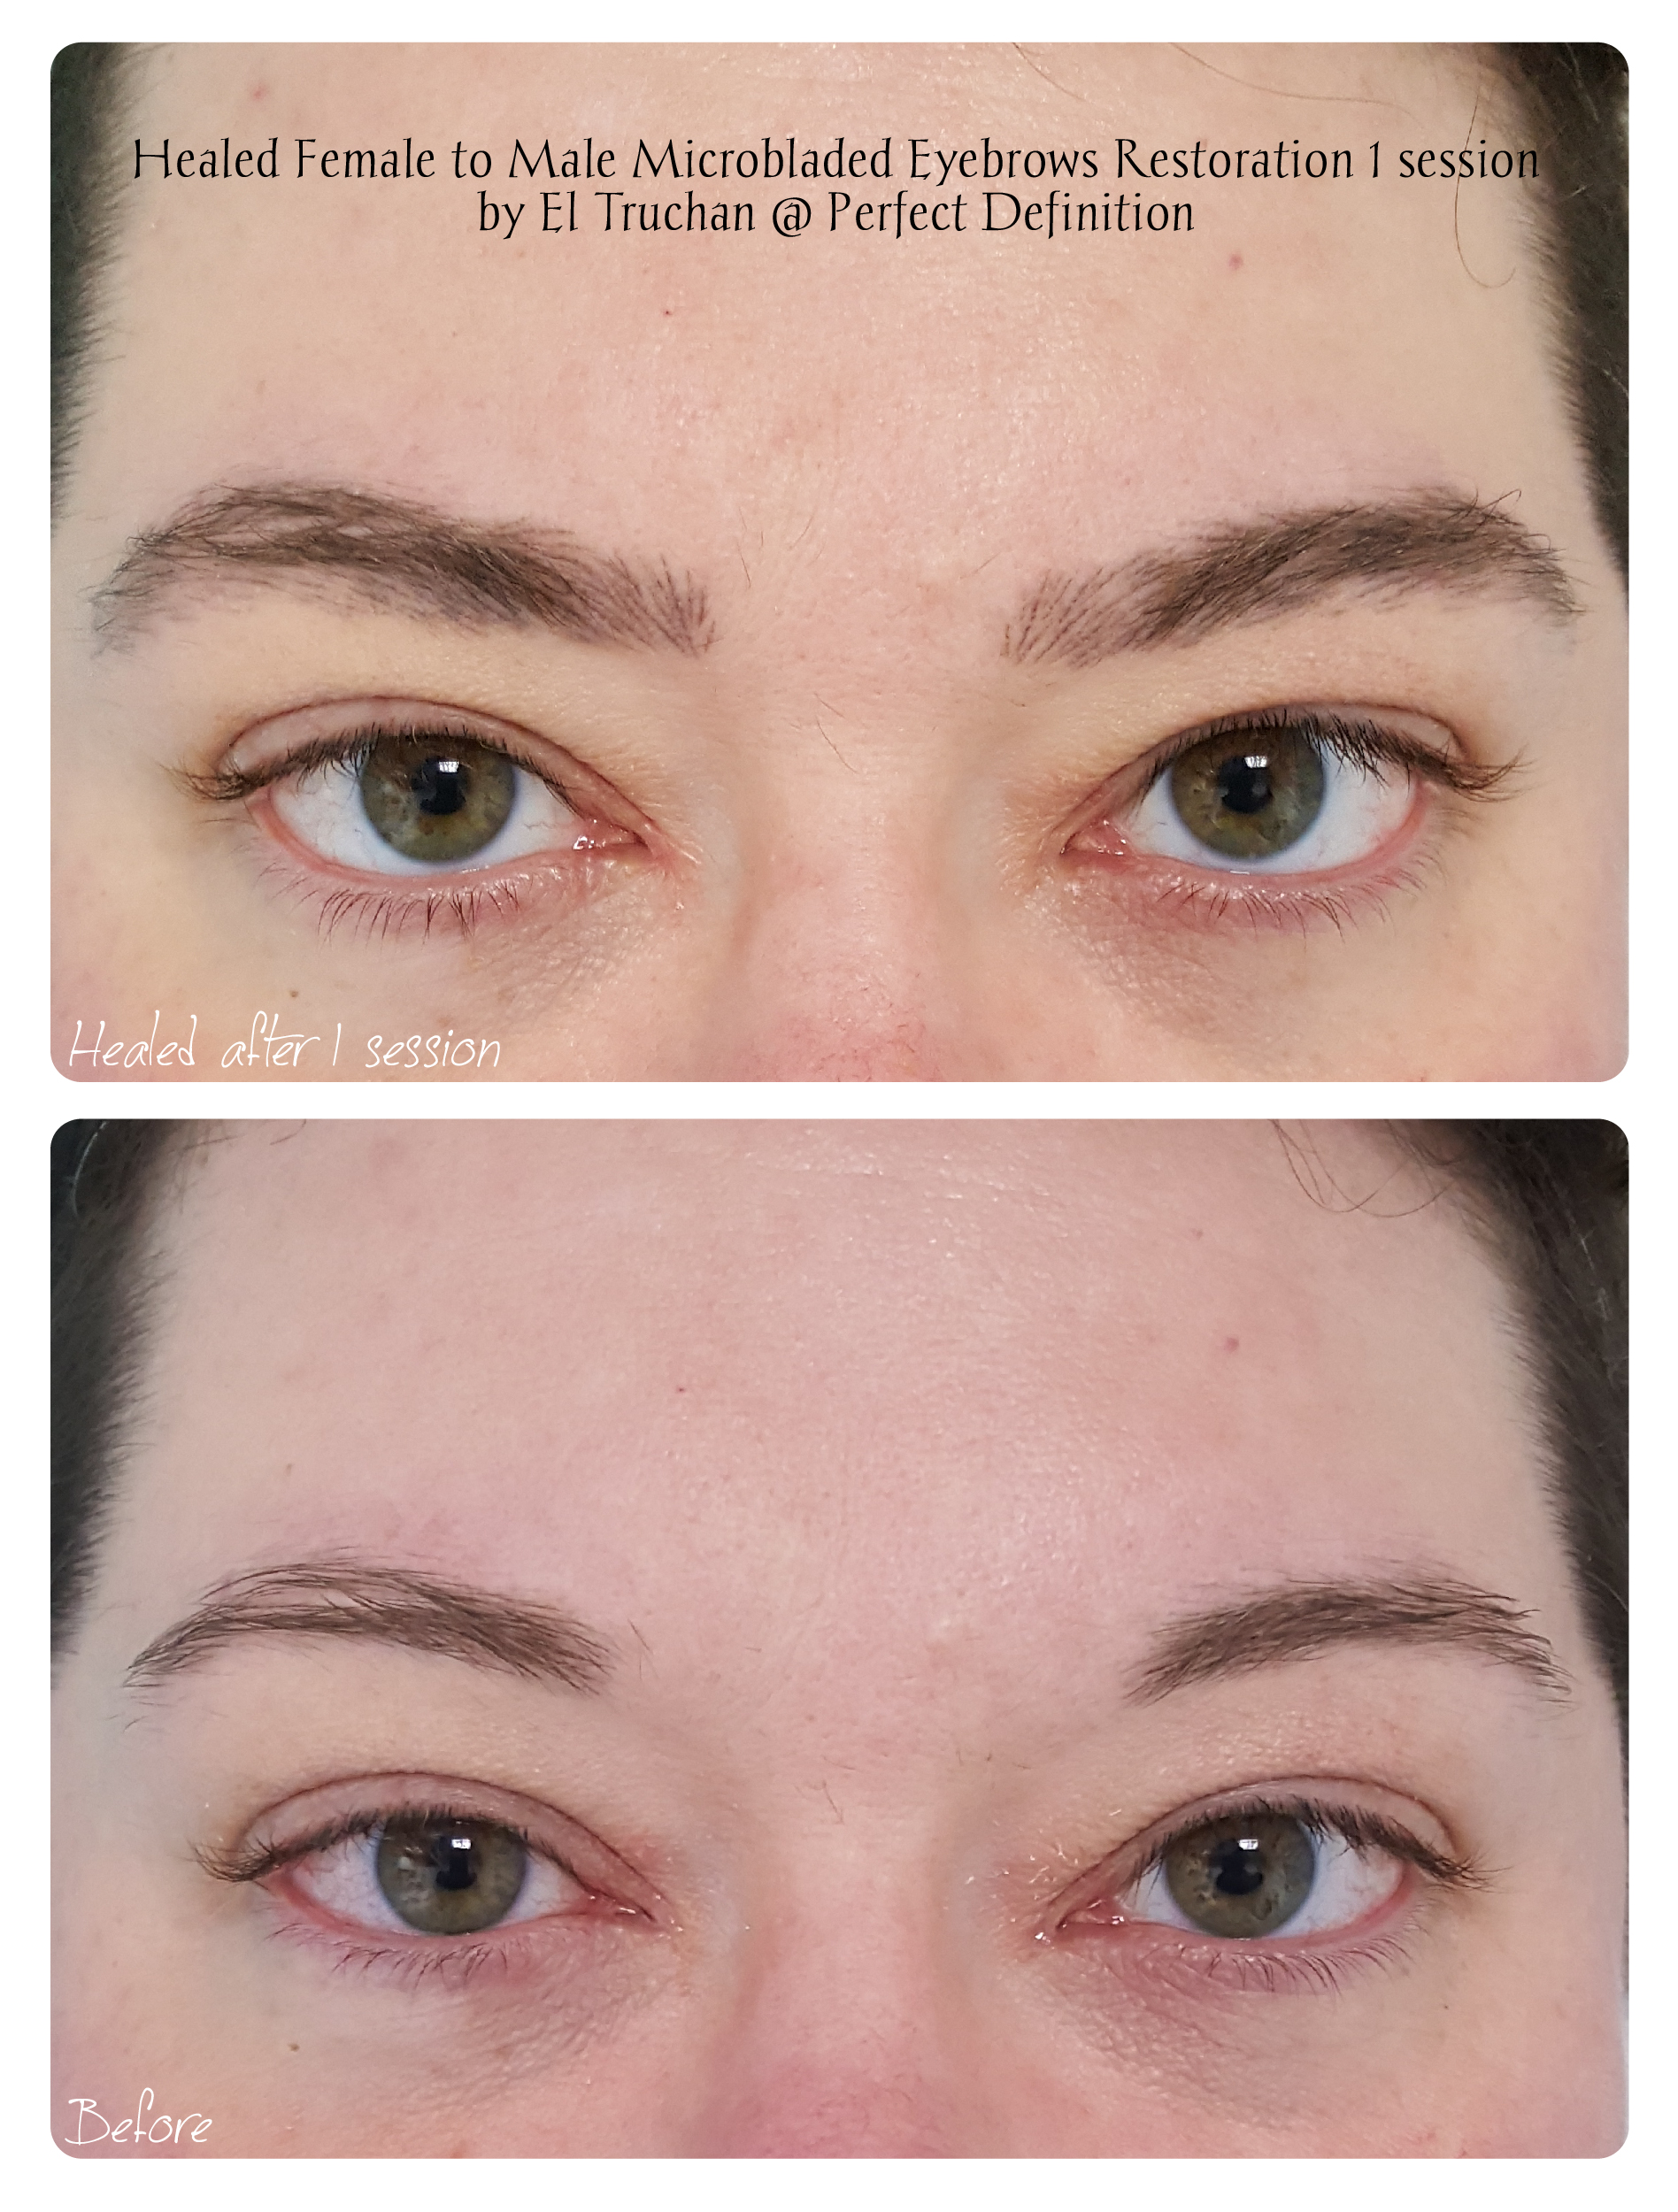 Healed Female to Male Microbladed Eyebro